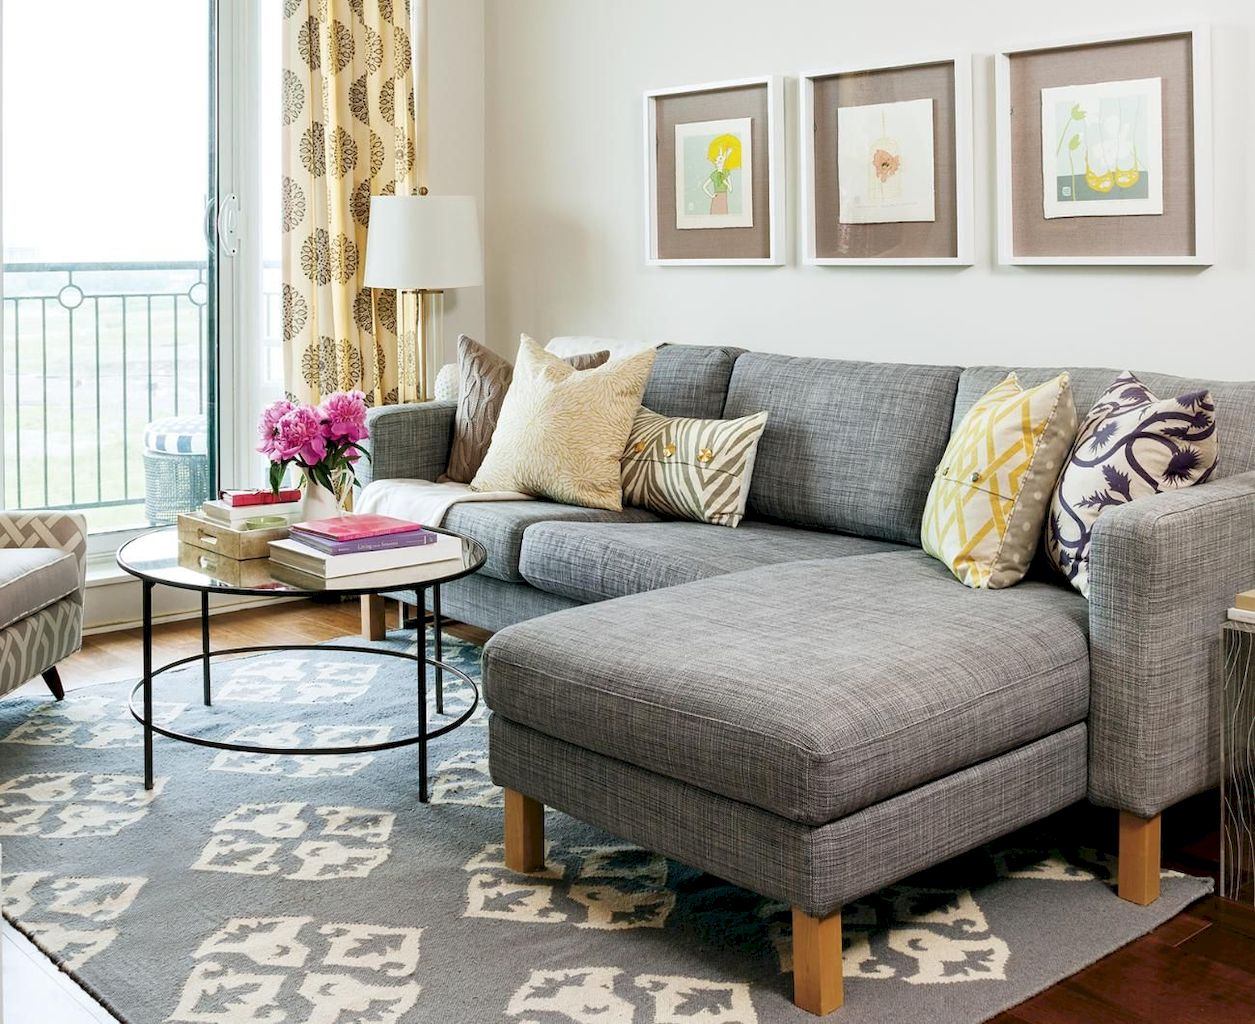 DIY Apartment Living Room Layout and Decor Part 4